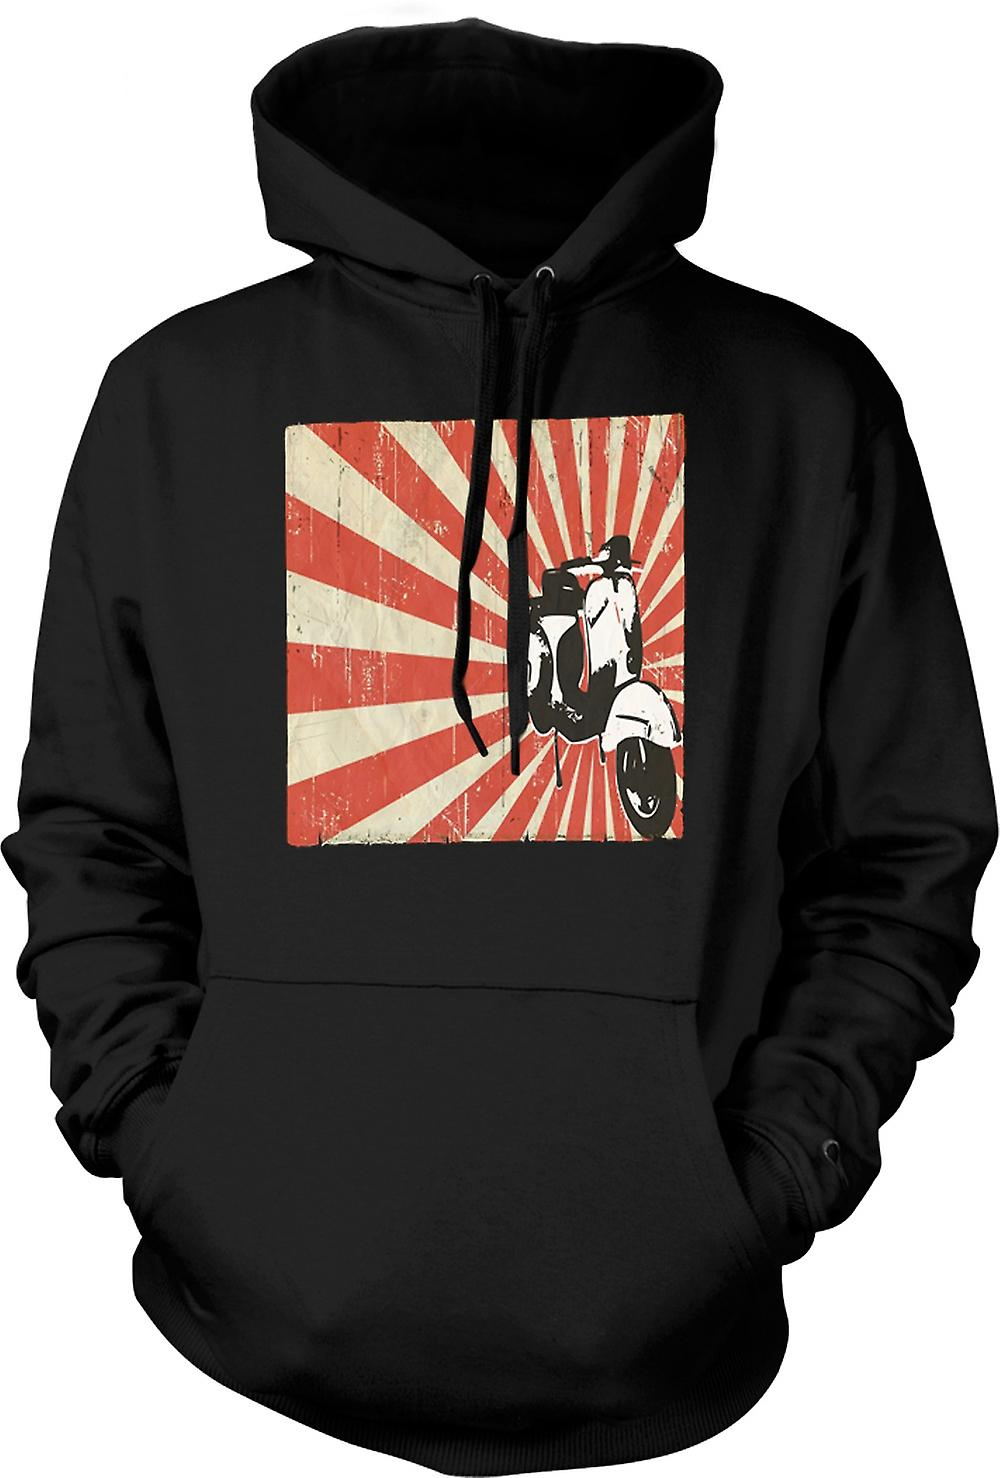 Mens Hoodie - Vespa Cool Design - Pop Art